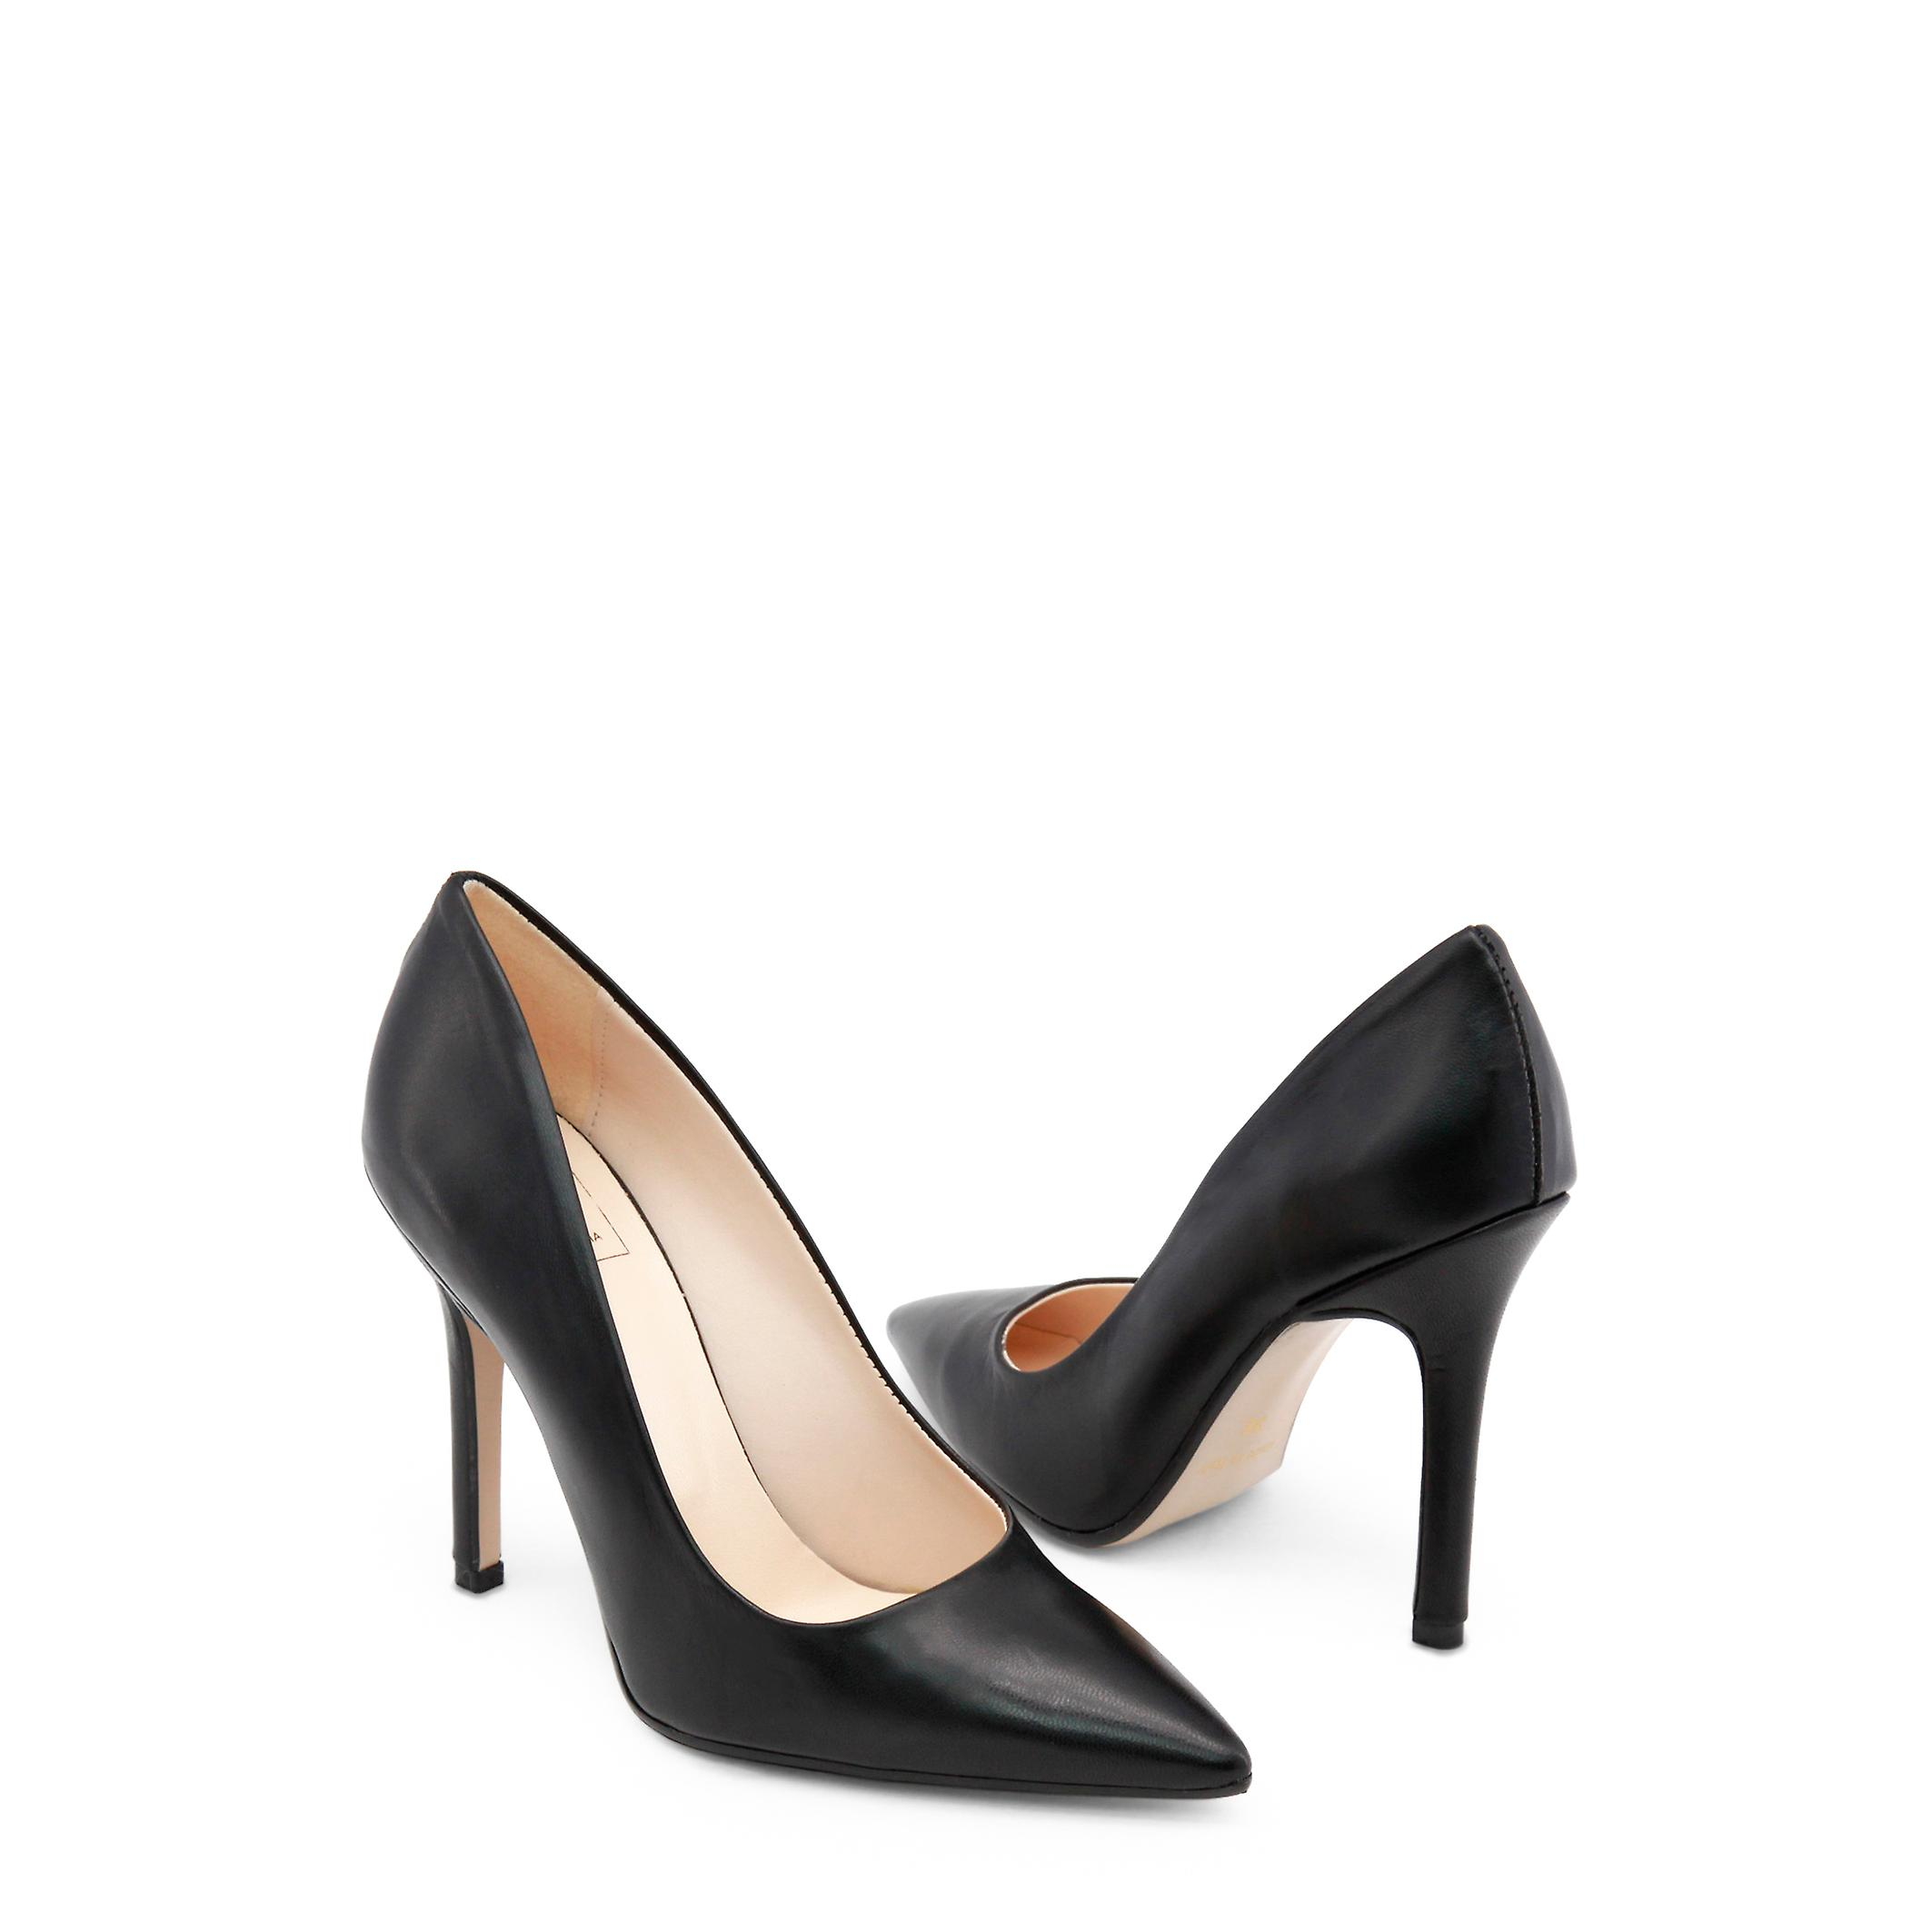 Made in Italia - EMOZIONI_NAPPA Women's Pump & Heel Shoe